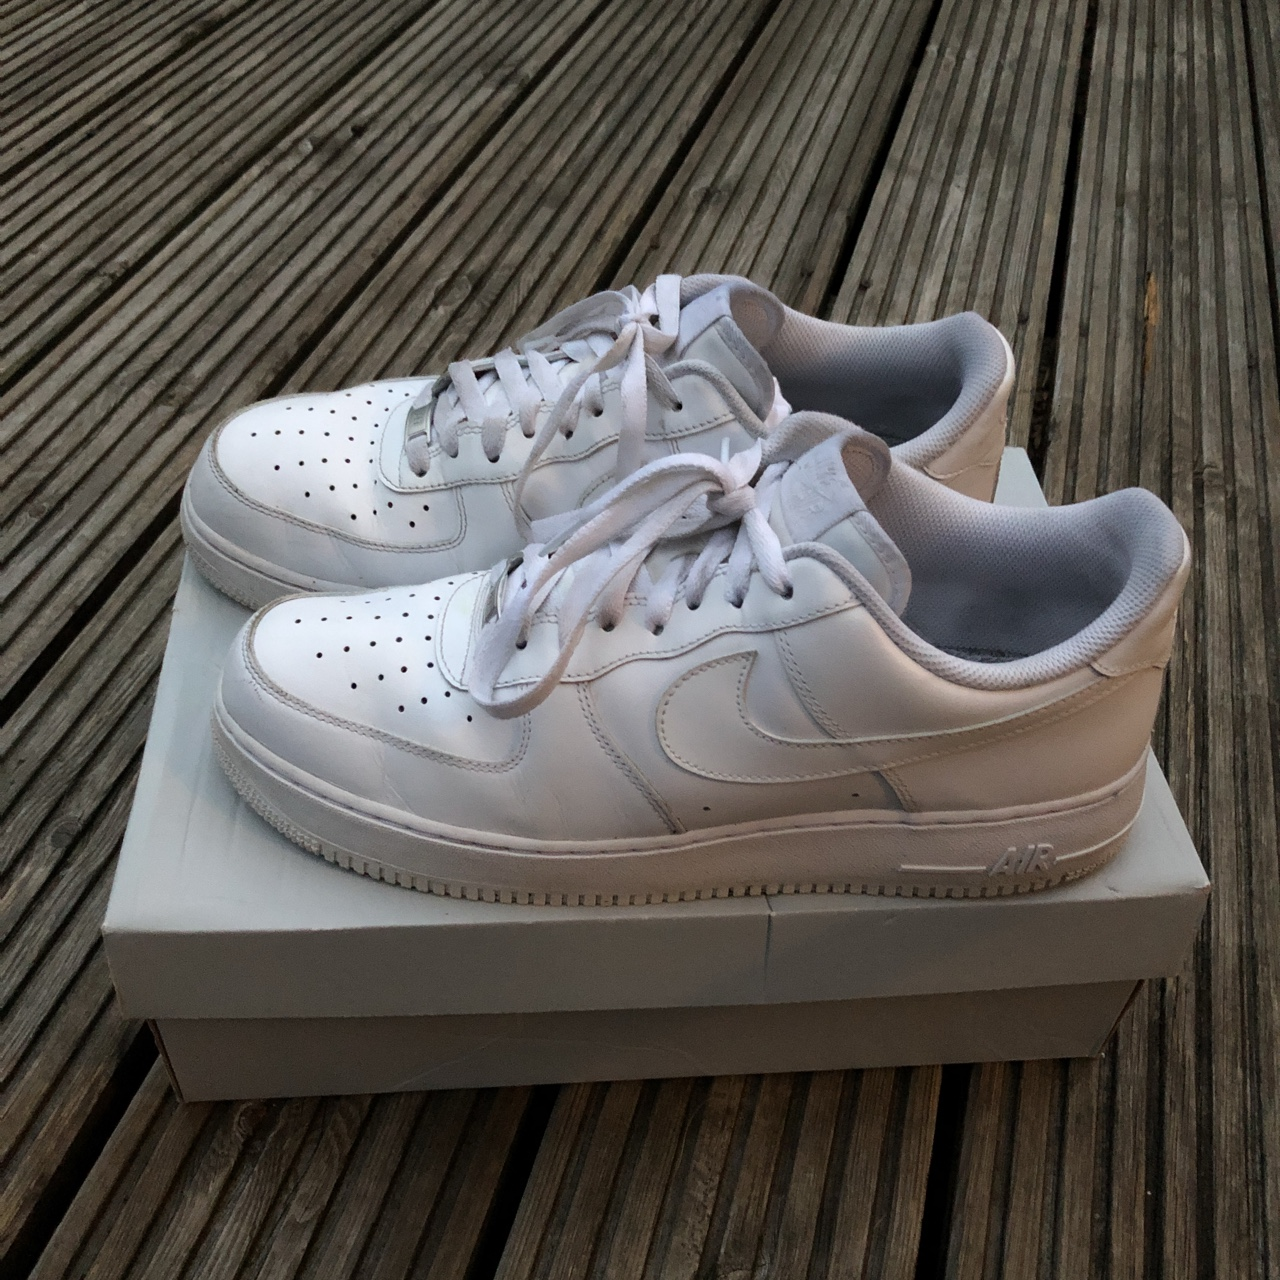 Adidas palace skate shoes in need of